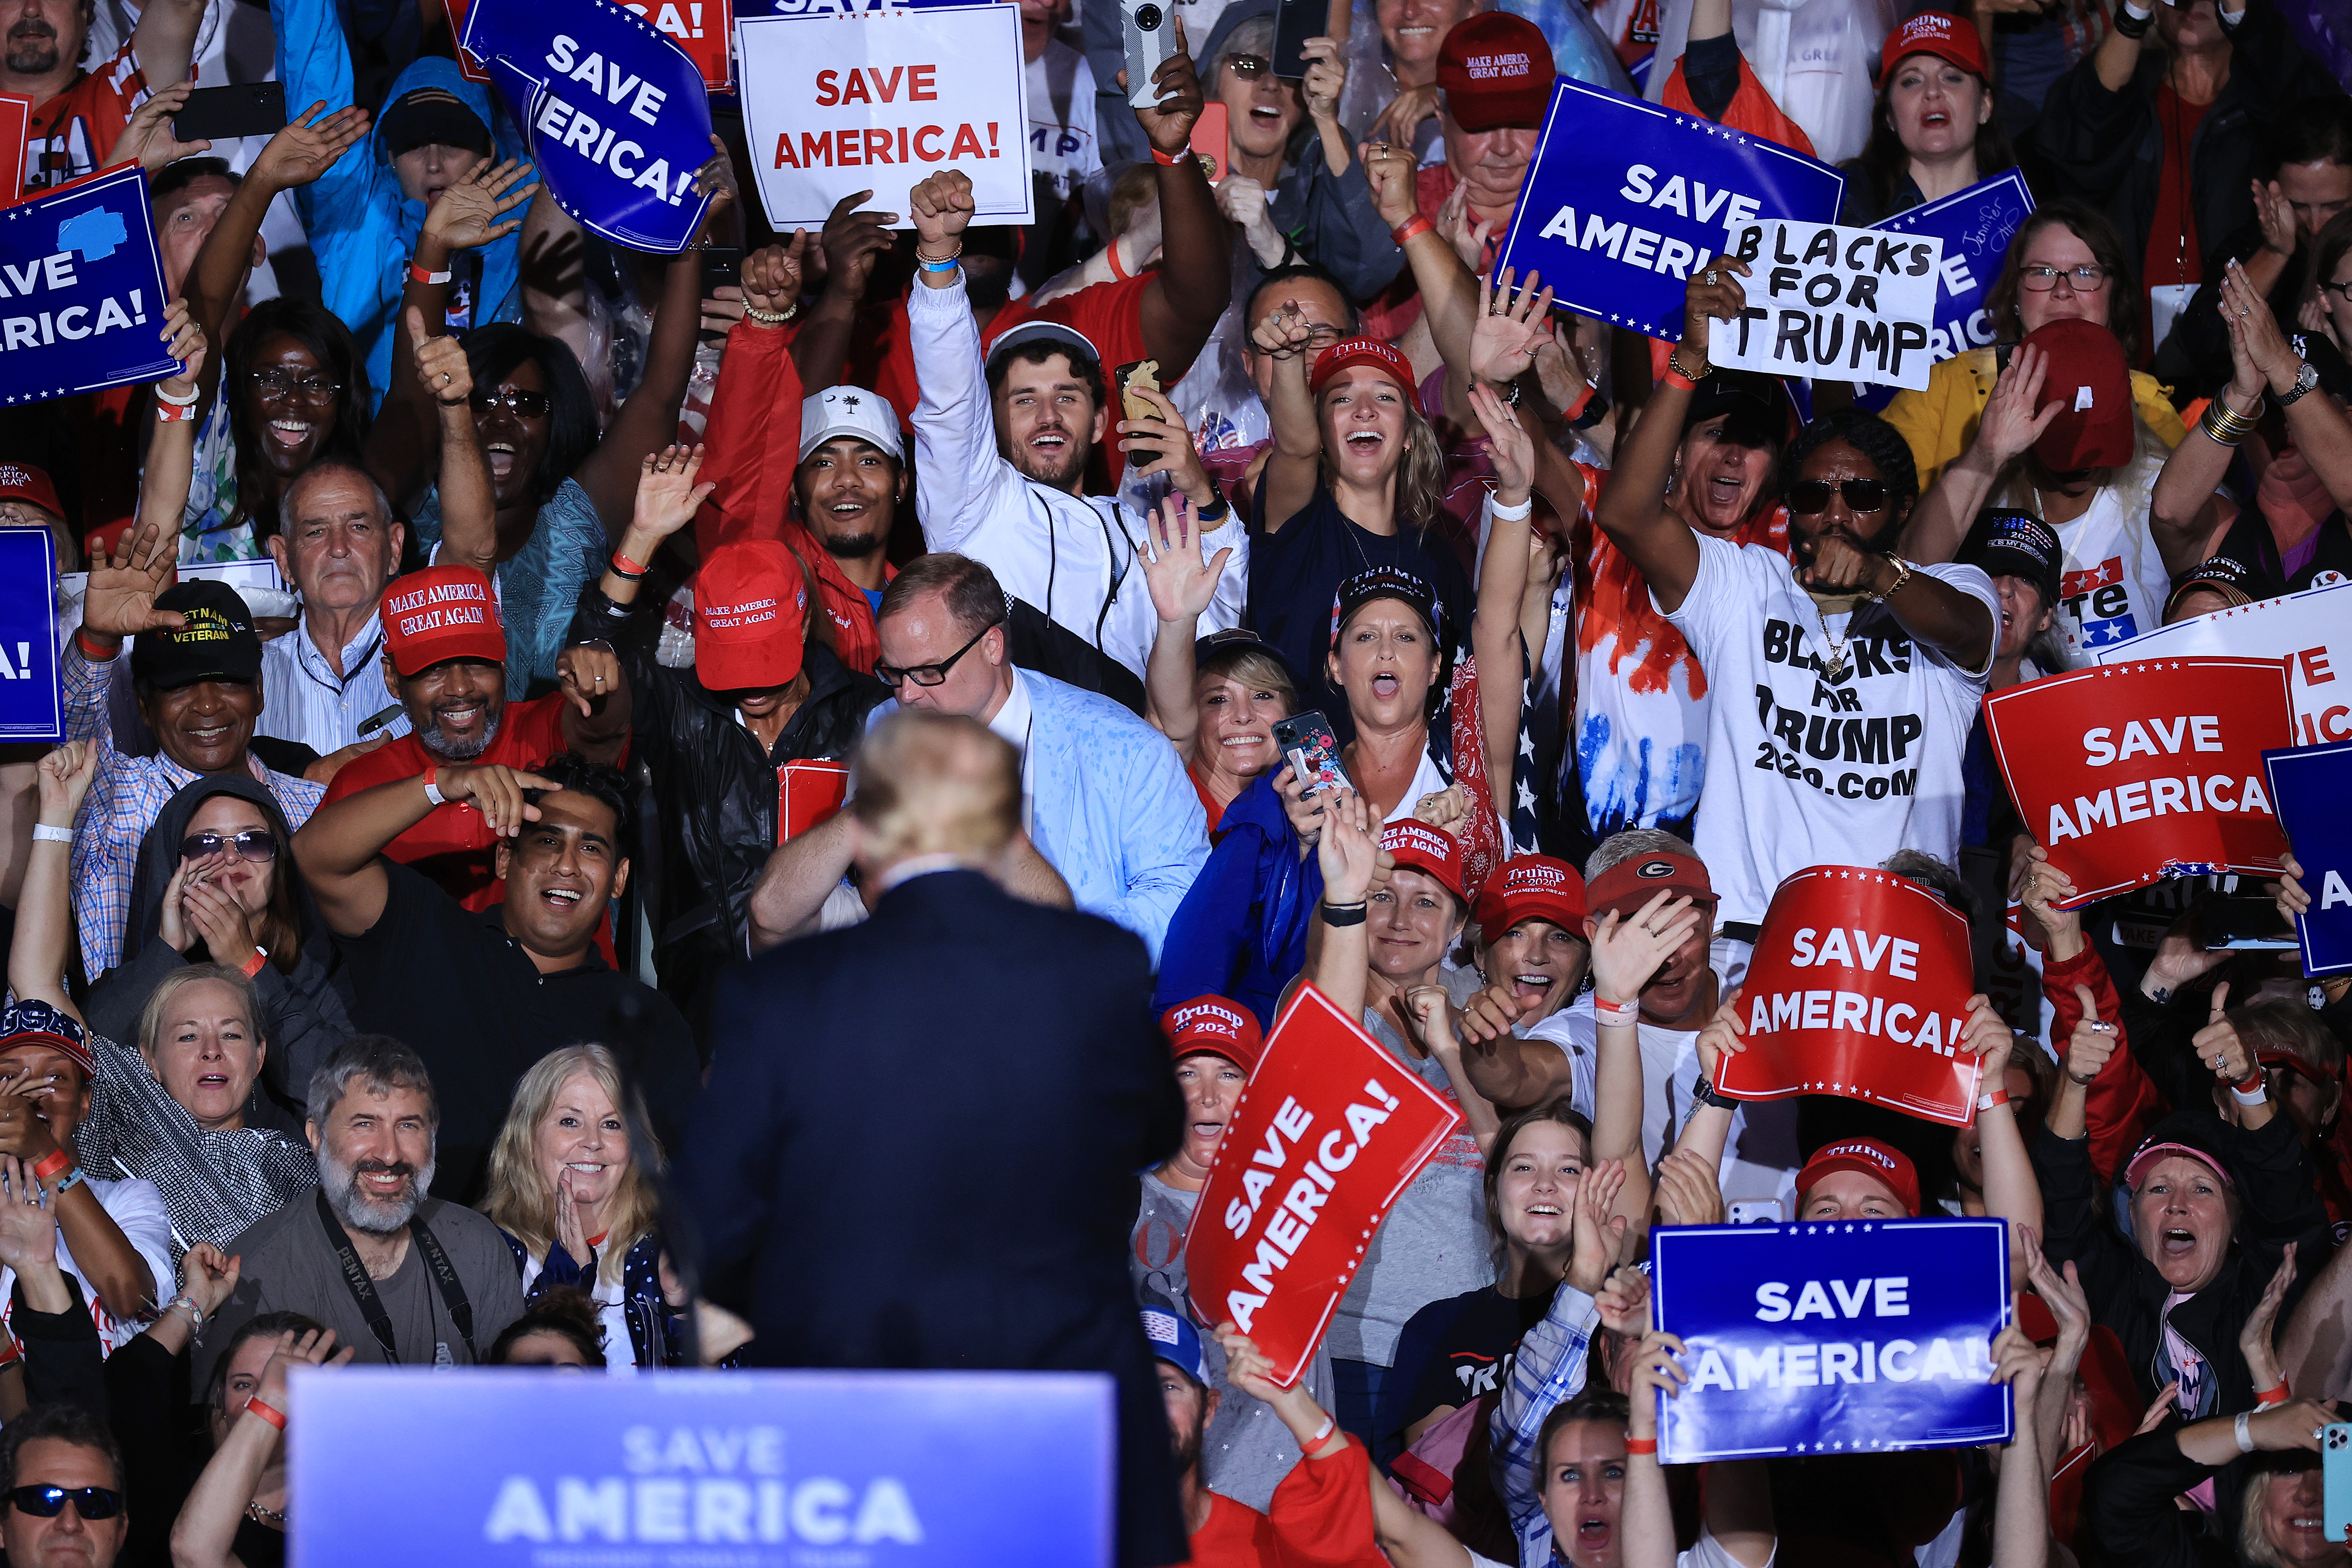 """Former President Donald Trump turns from the camera to face the crowd waving """"Save America"""" signs behind him at a rally."""